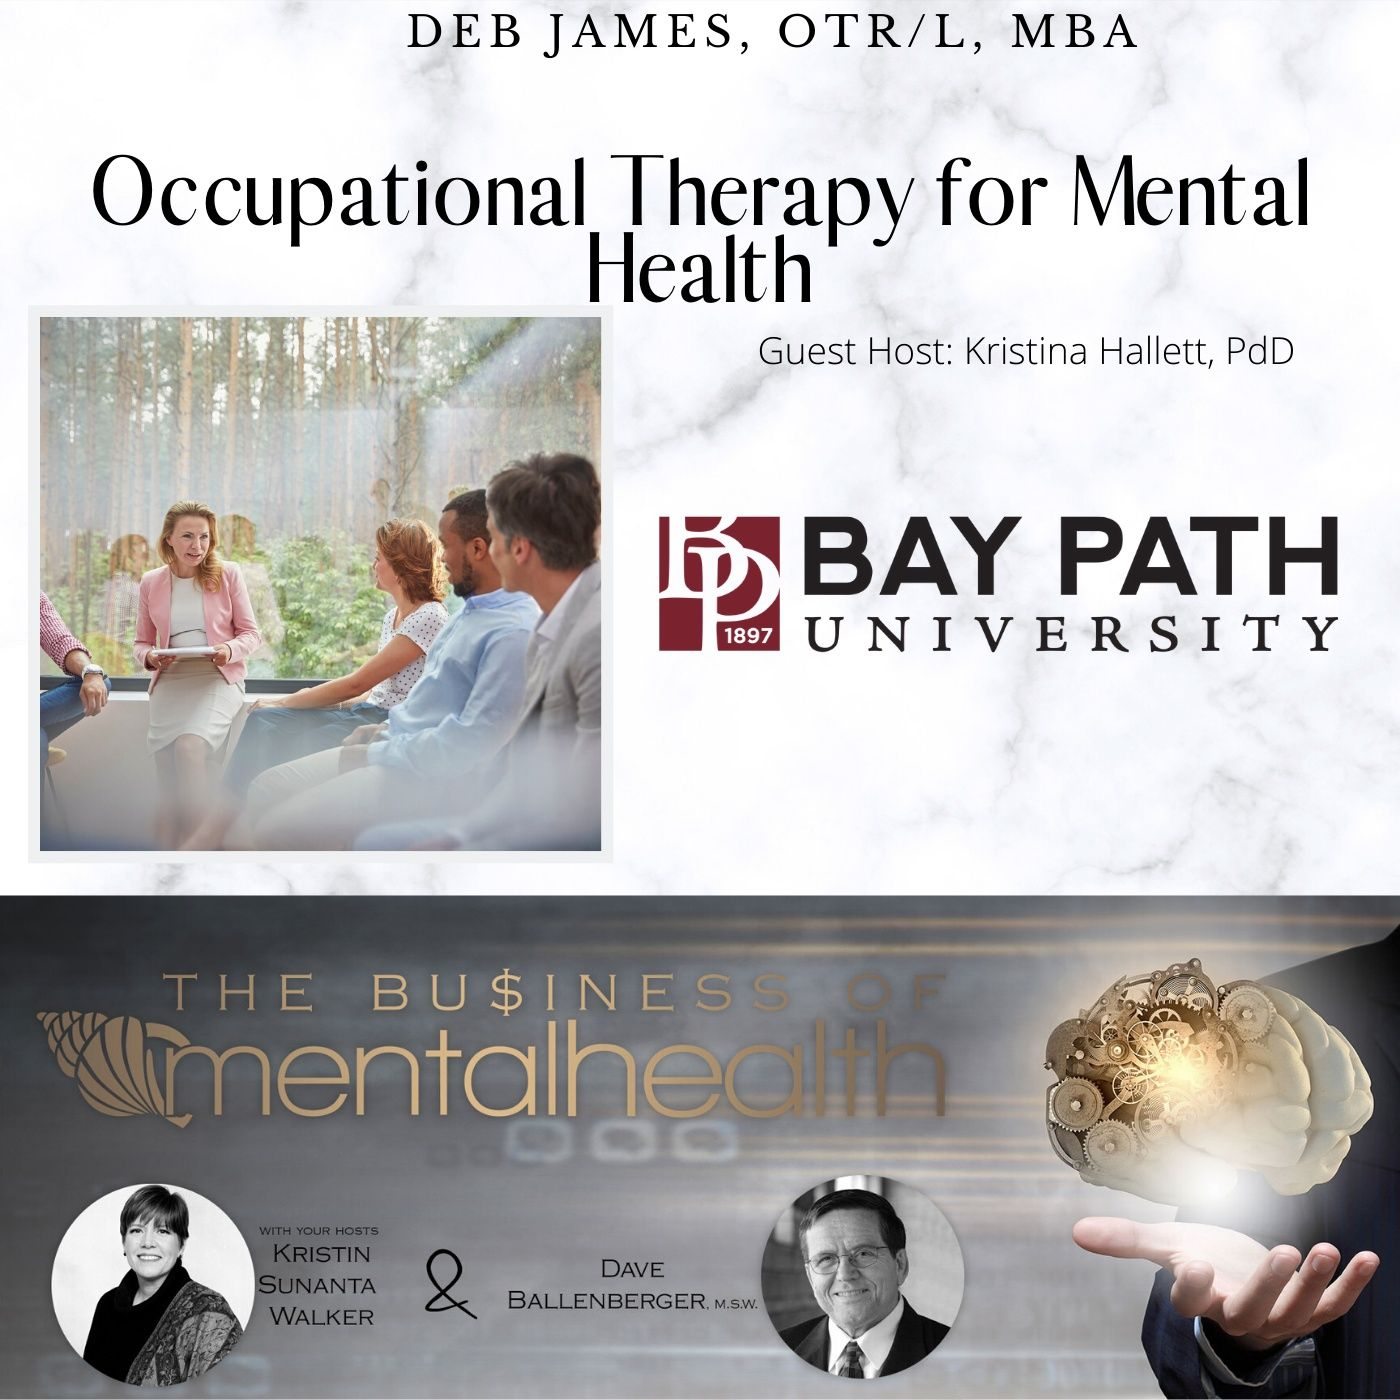 Mental Health News Radio - Occupational Therapy for Mental Health